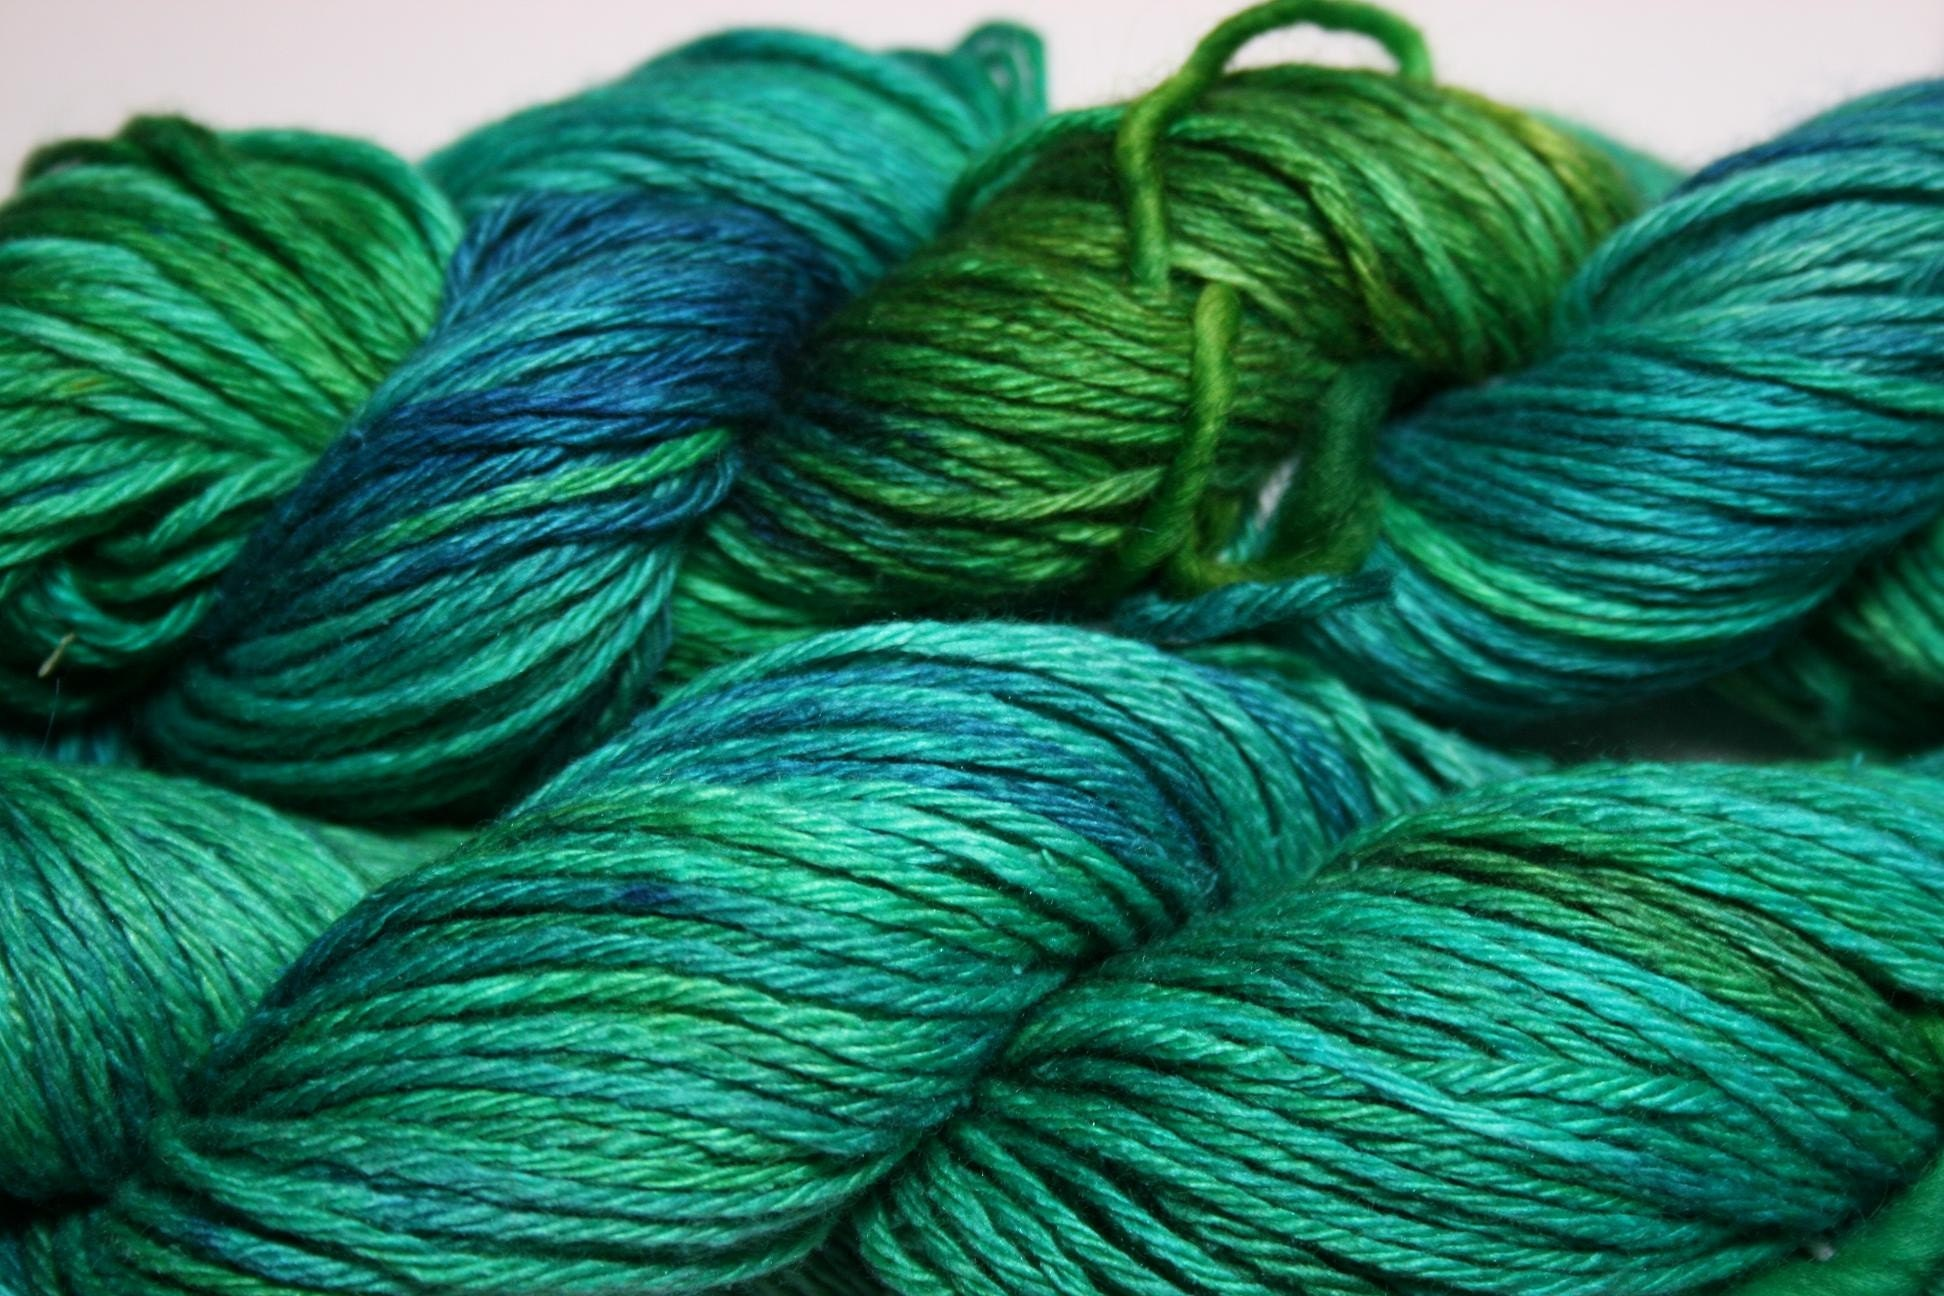 Neptune Gaia DK Yarn hand-painted in blues and greens